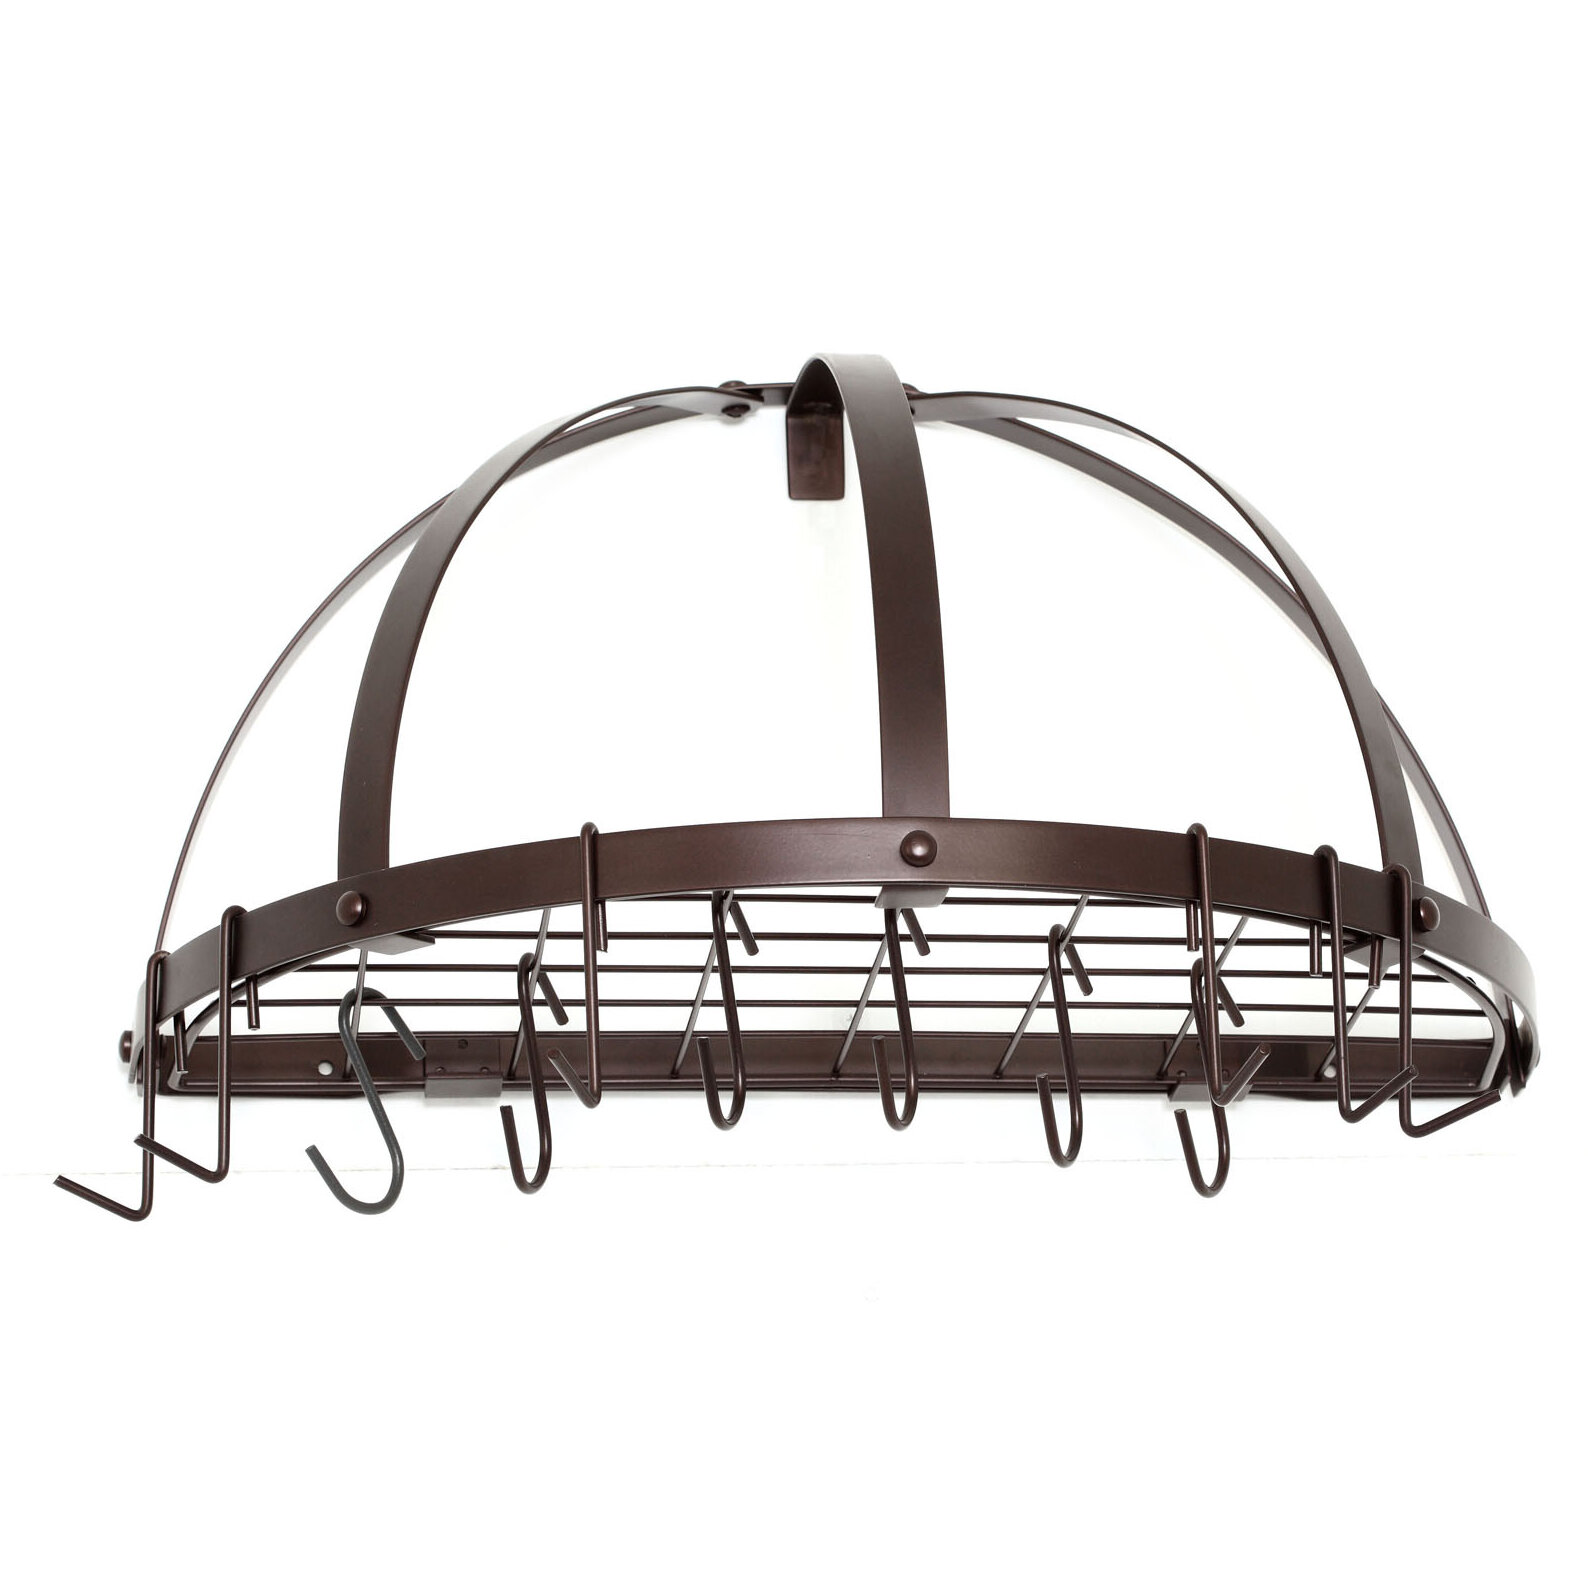 functional racks grape crafted fixtures lights copper with pot the rack hand